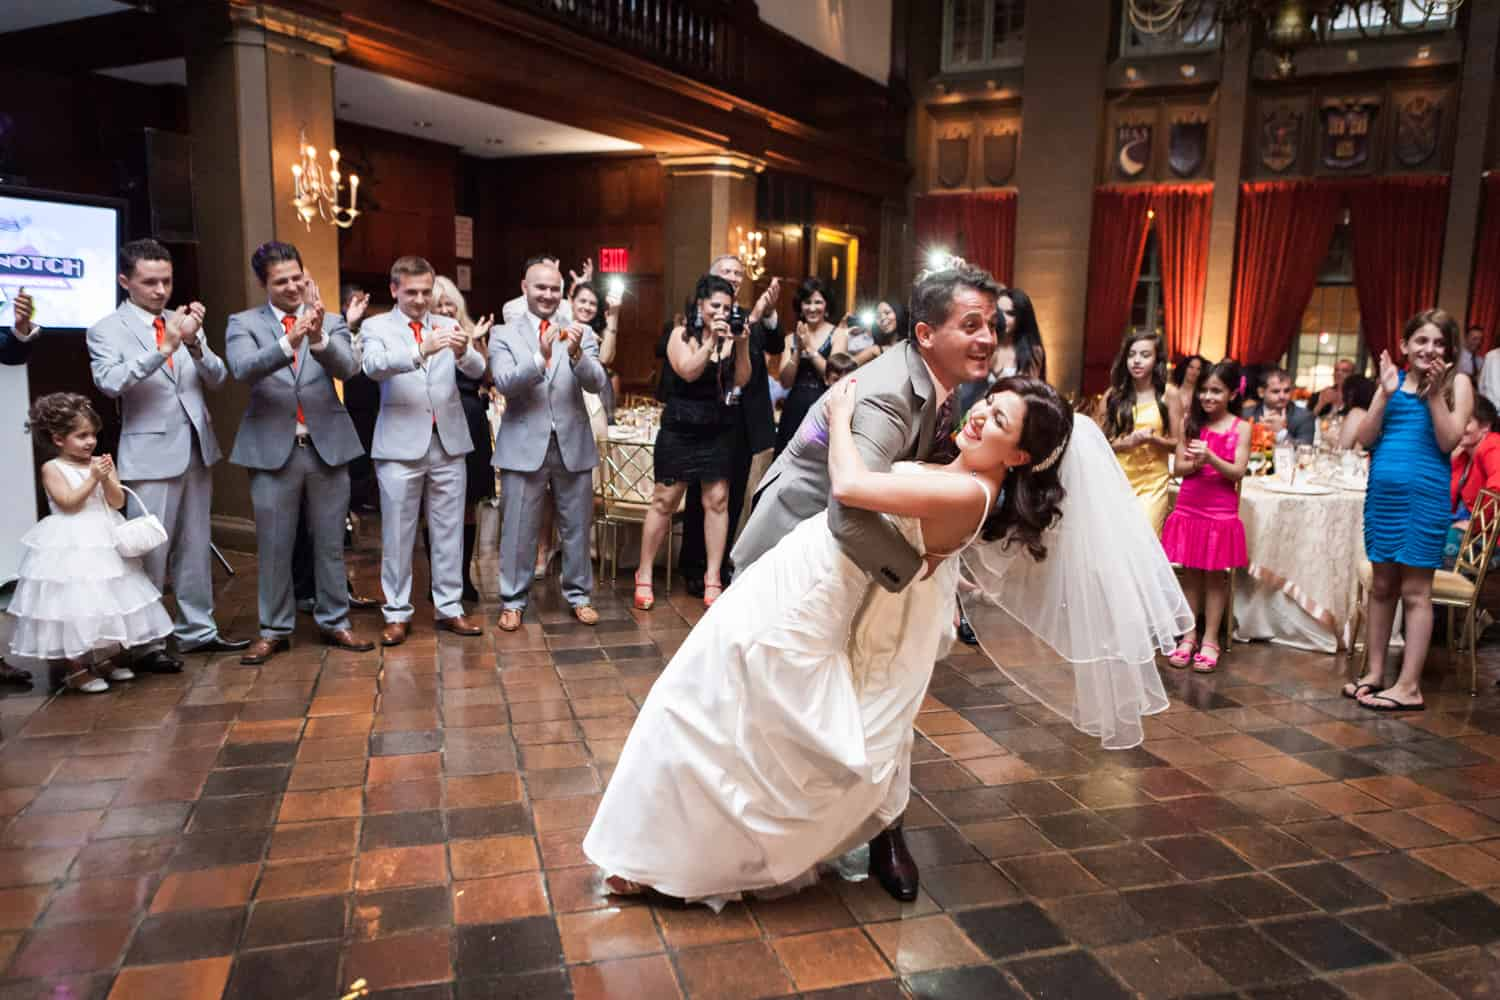 Groom dipping bride during first dance at a Harvard Club wedding